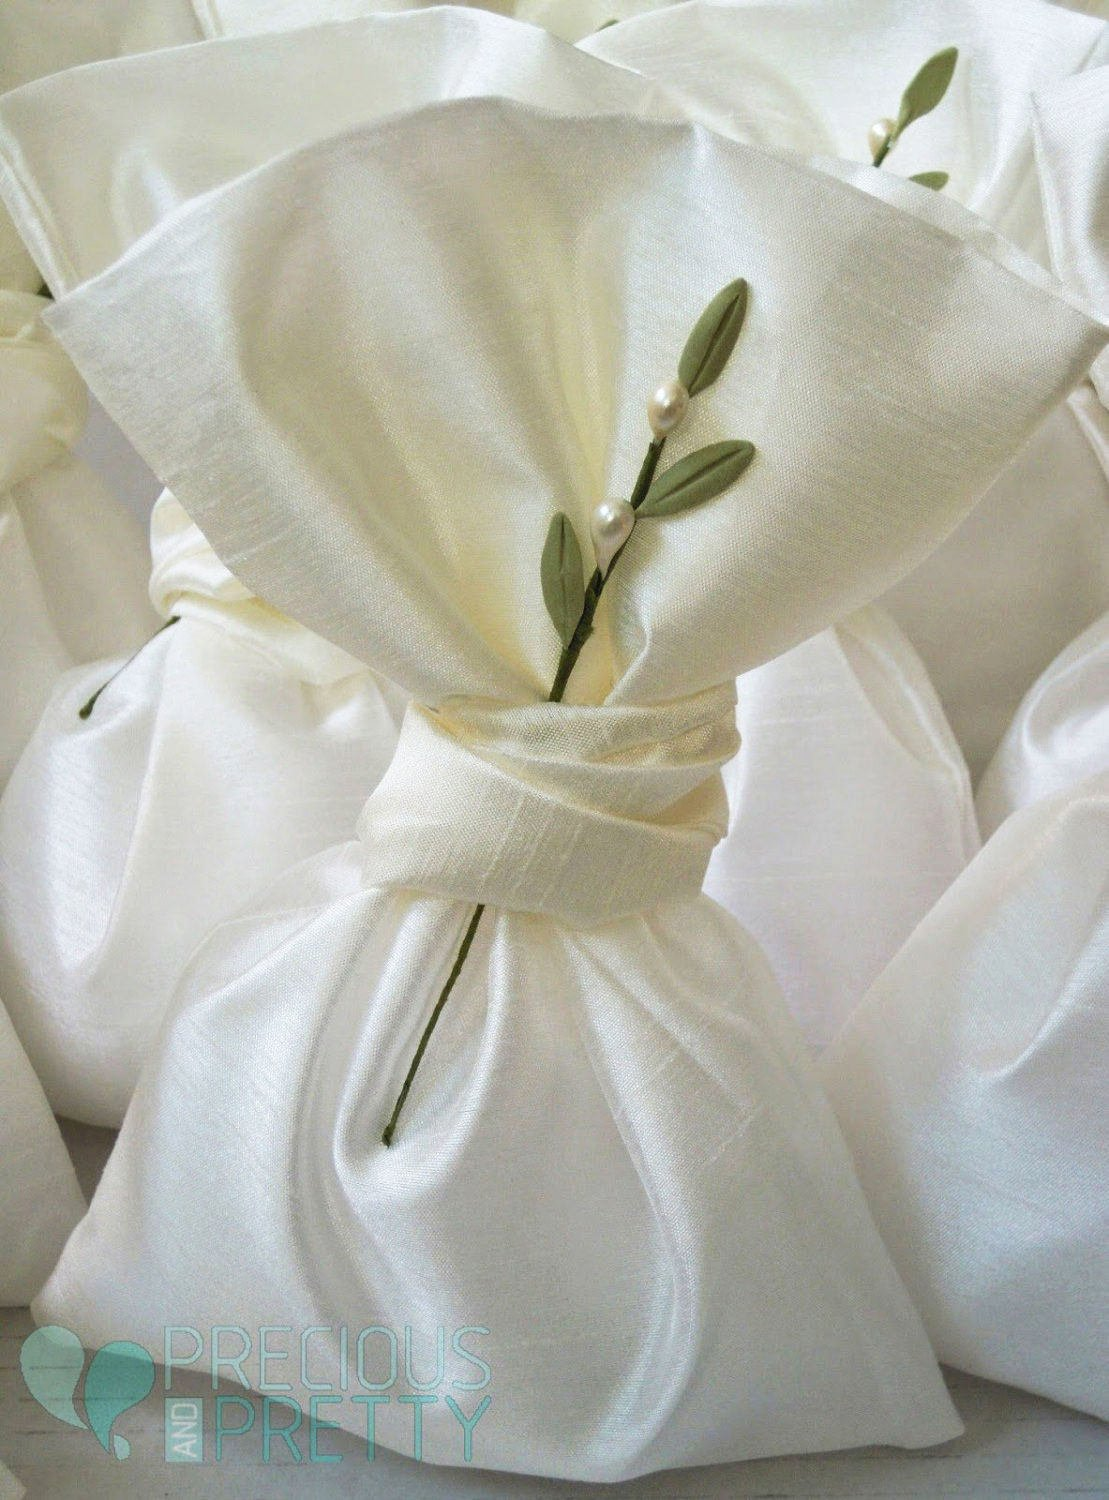 Olive favor bags for Greek weddings